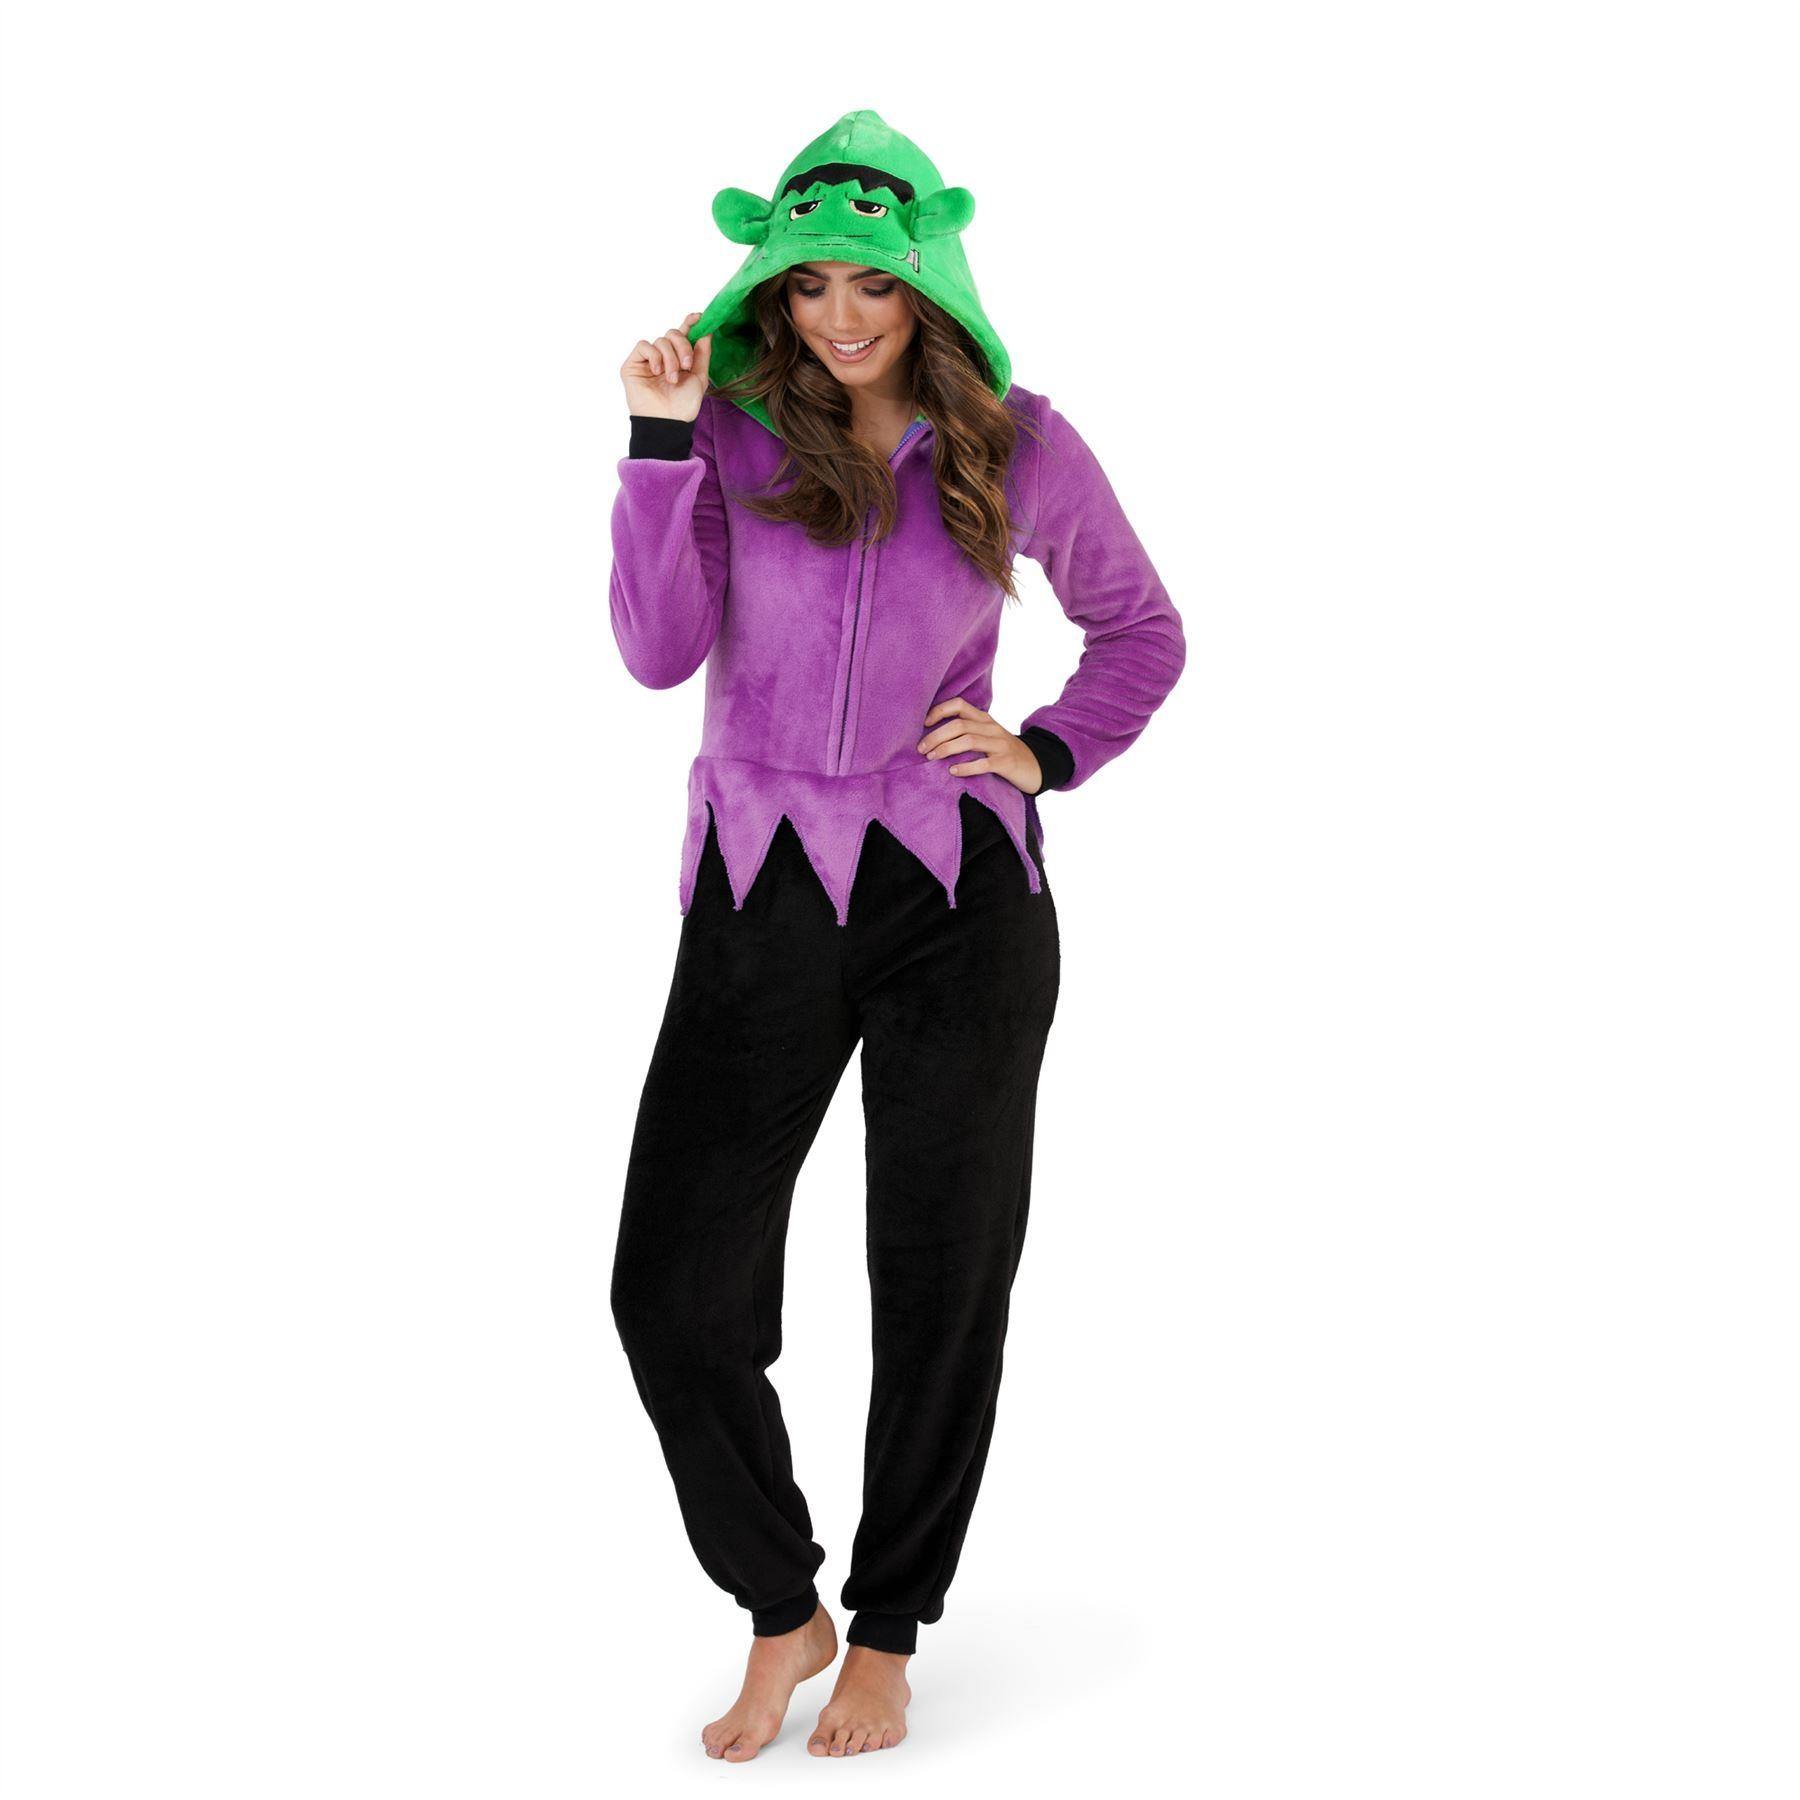 c6fdf63846cf Loungeable Boutique Monster Onesie